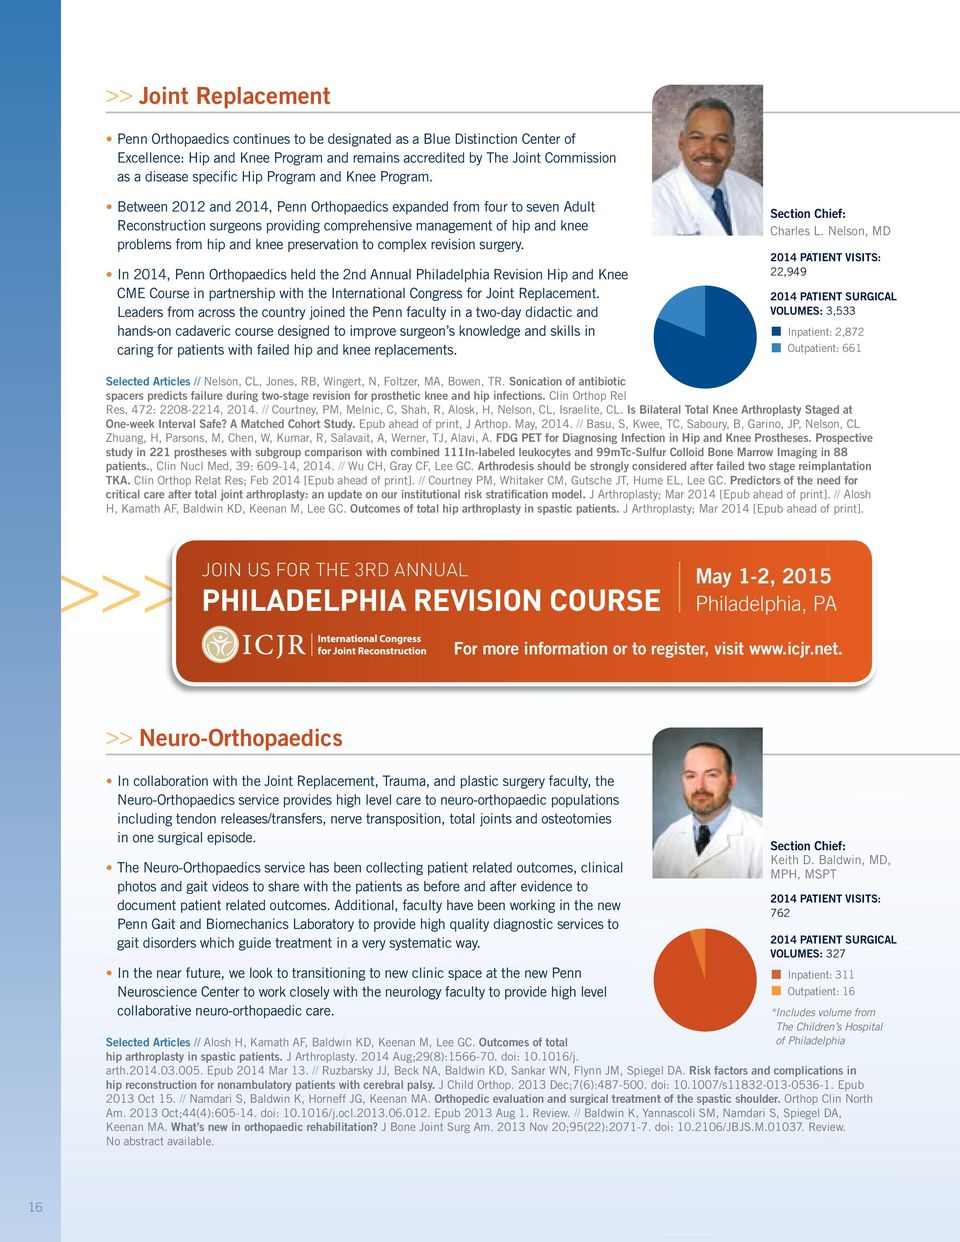 Between 2012 and 2014, Penn Orthopaedics expanded from four to seven Adult Reconstruction surgeons providing comprehensive management of hip and knee problems from hip and knee preservation to